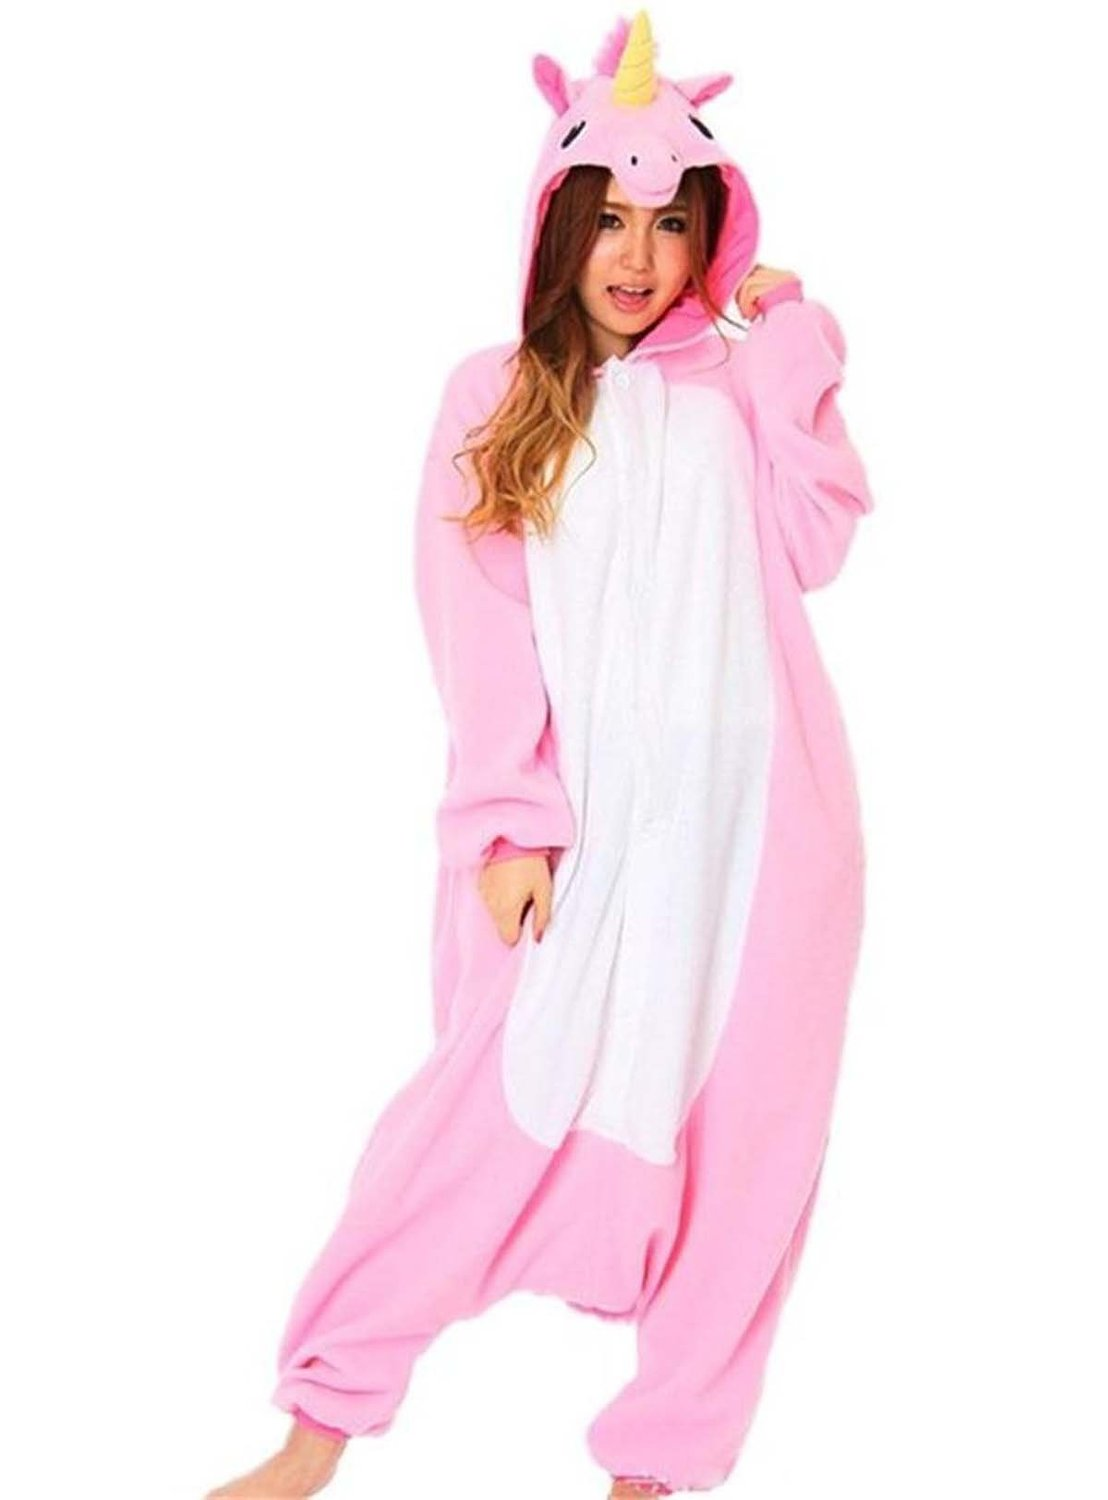 Amazon.com: UBeauty Unisex-adult Kigurumi Onesie Unicorn ...